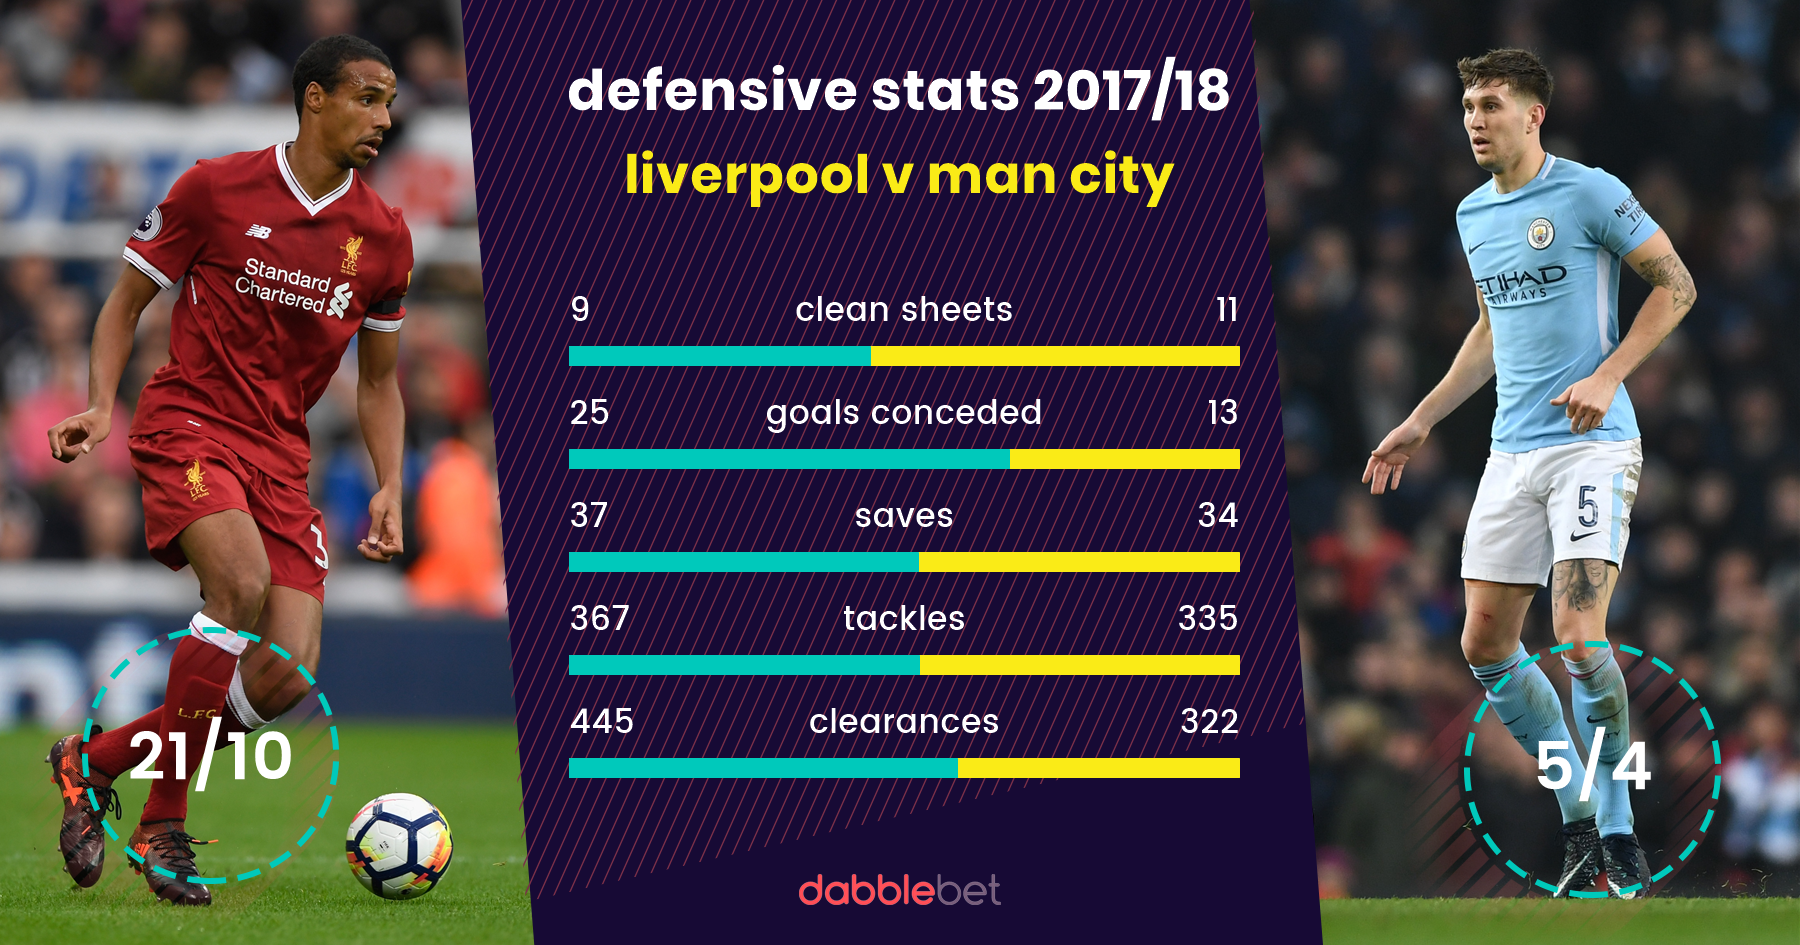 Liverpool Man City graphic